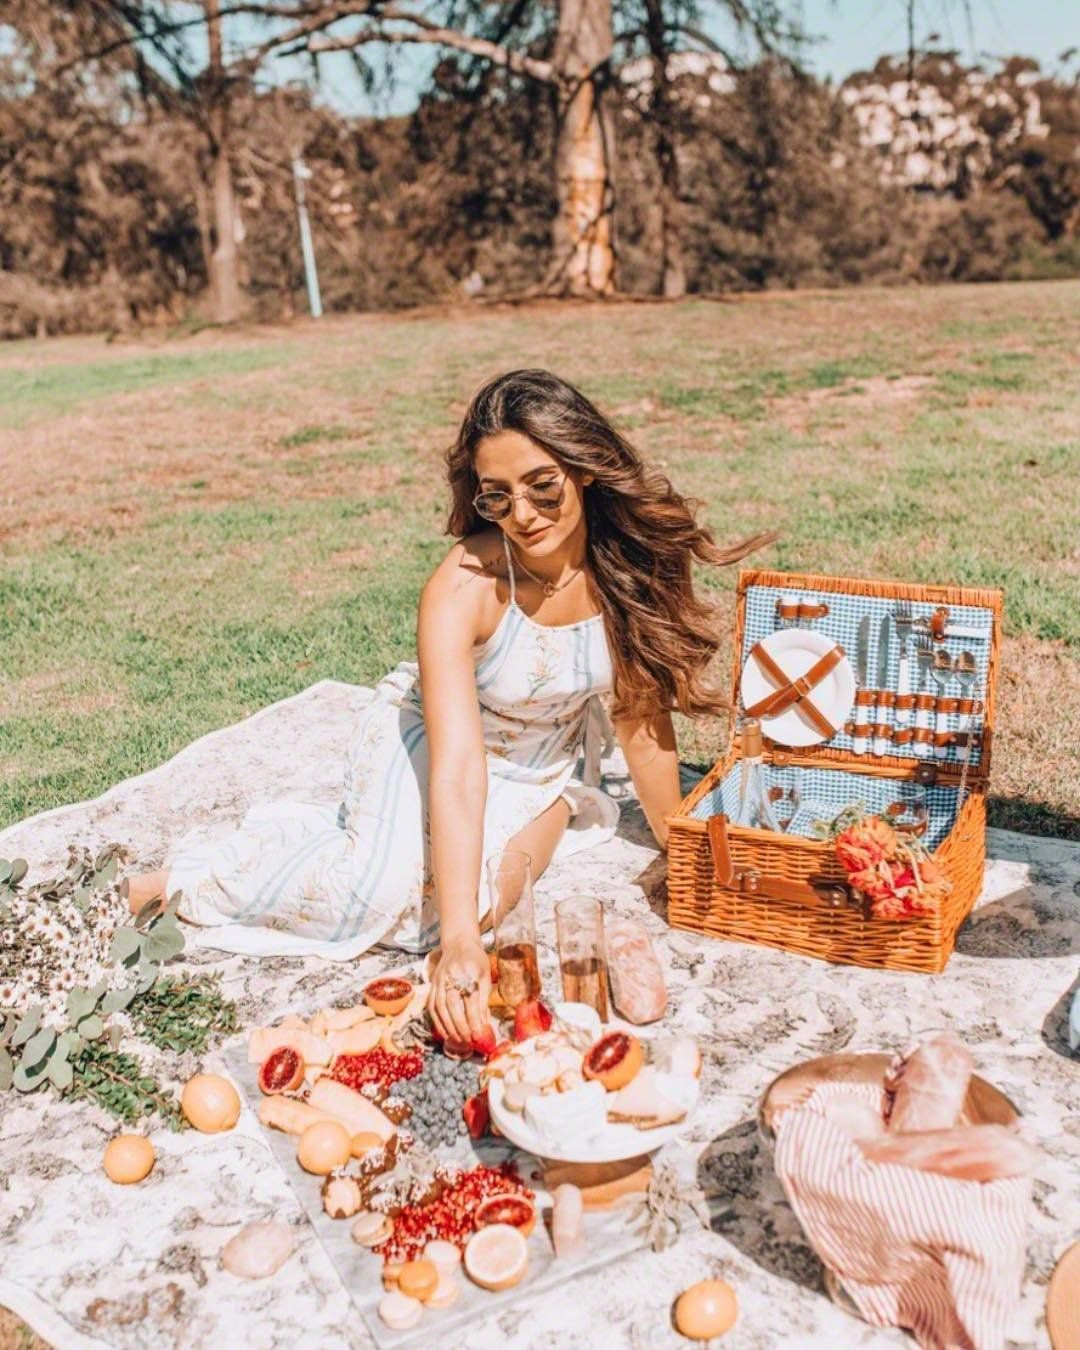 907 Likes 52 Comments Ruby Thatgemruby On Instagram Decided To Have A Little Picnic Shoot With My Bestie Picnic Photography Picnic Picnic Inspiration [ 1350 x 1080 Pixel ]